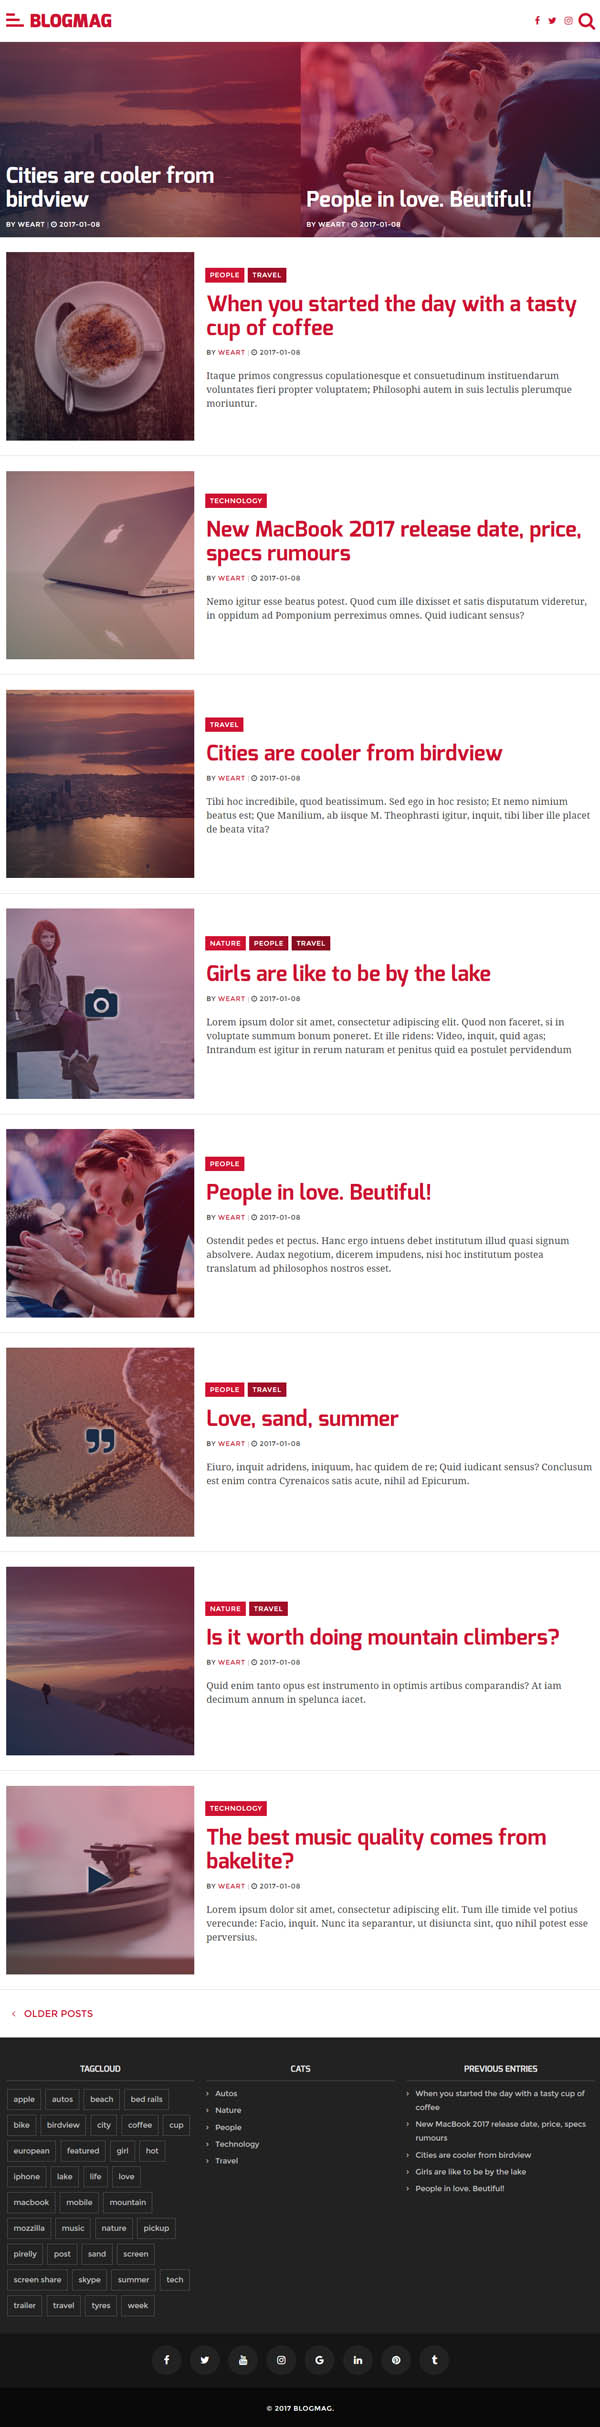 BlogMag – Responsive Blog and Magazine WordPress Theme